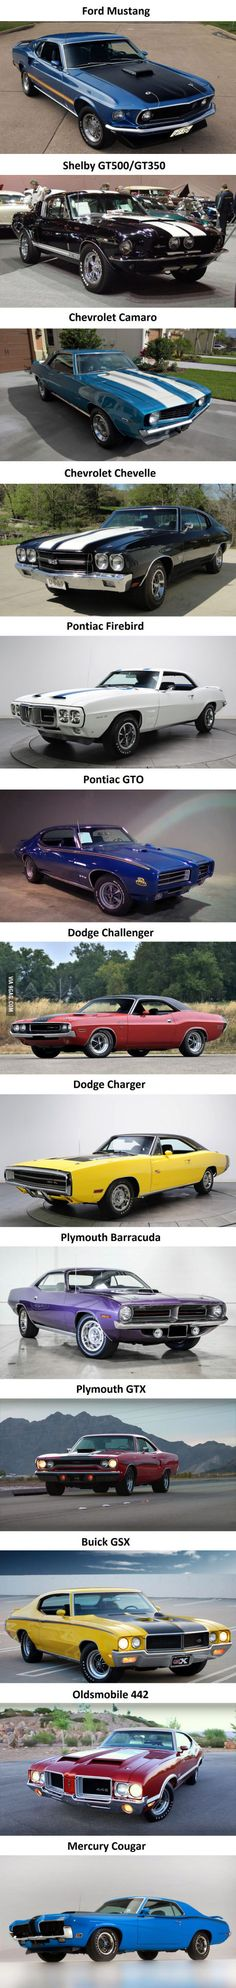 The Most Iconic Muscle Cars - dream cars - Auto Muscle Cars Vintage, Vintage Cars, Antique Cars, Pontiac Gto, Chevrolet Chevelle, Chevy, Dream Cars, Jaguar E Typ, Sweet Cars